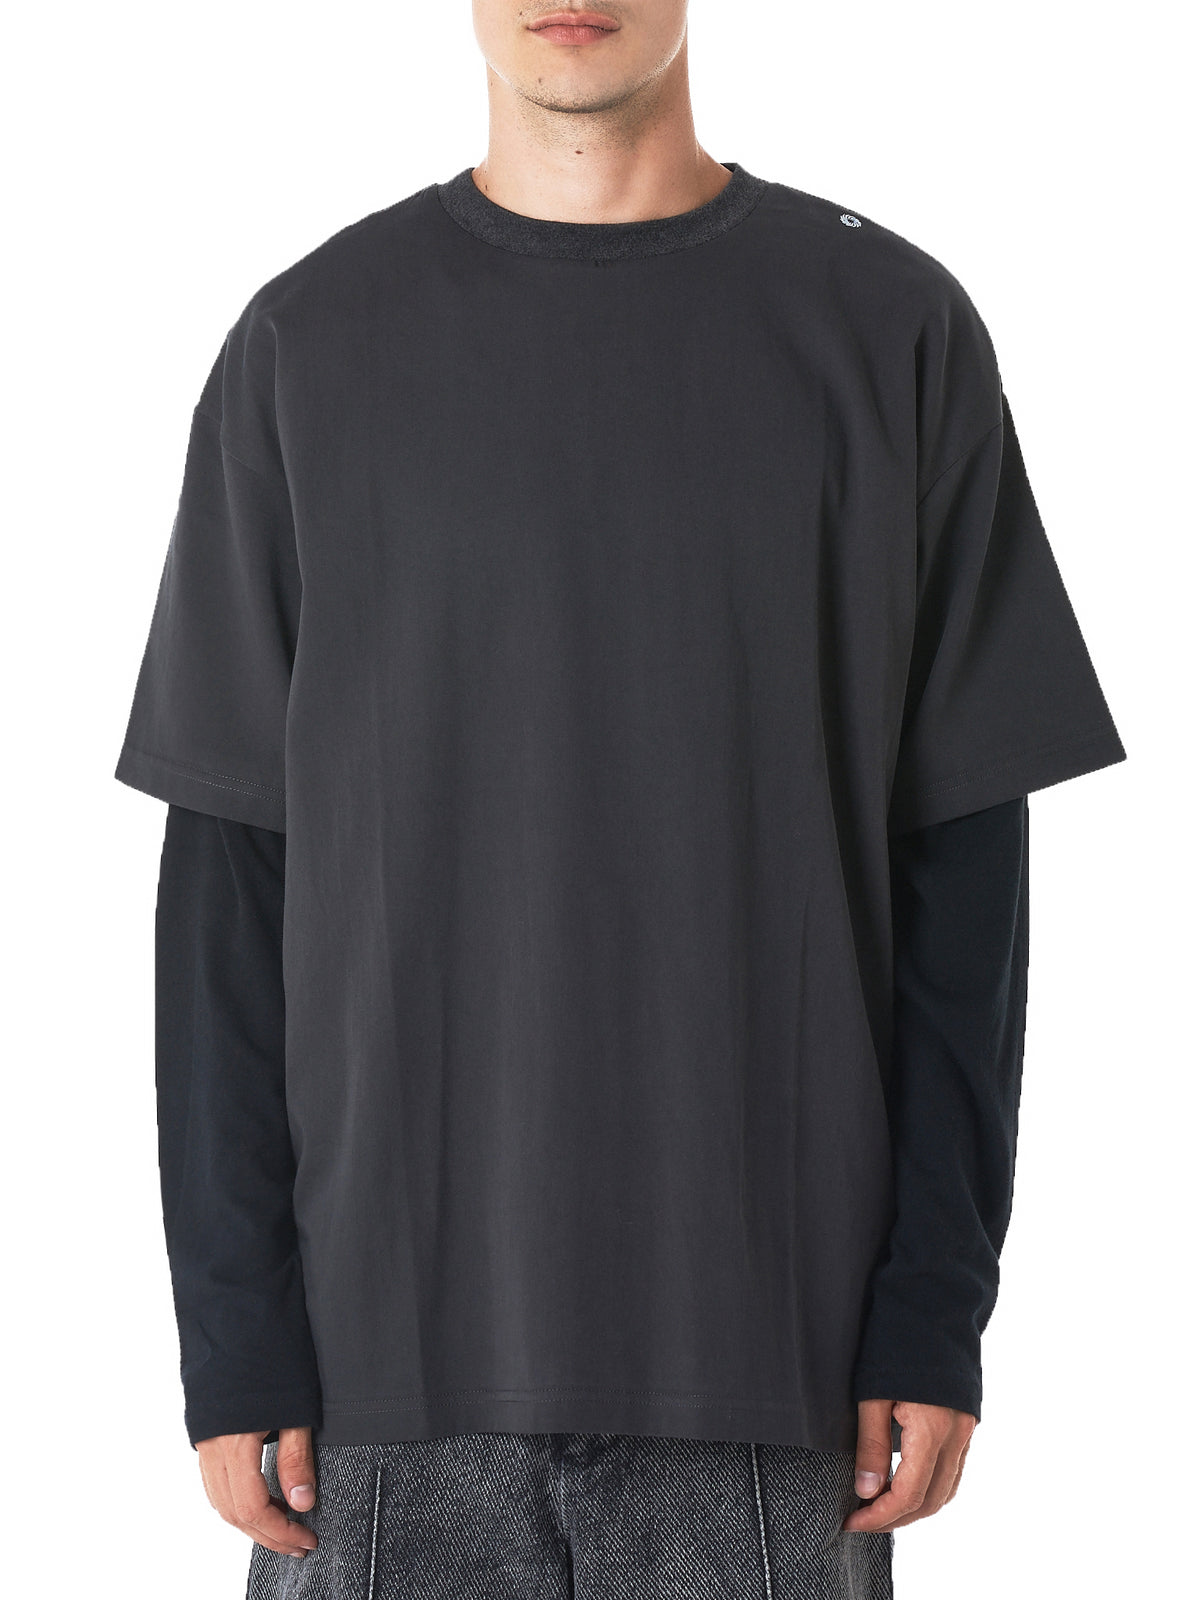 Long-Sleeve Crewneck Tee (TS1K-LAYERED-BLACK)